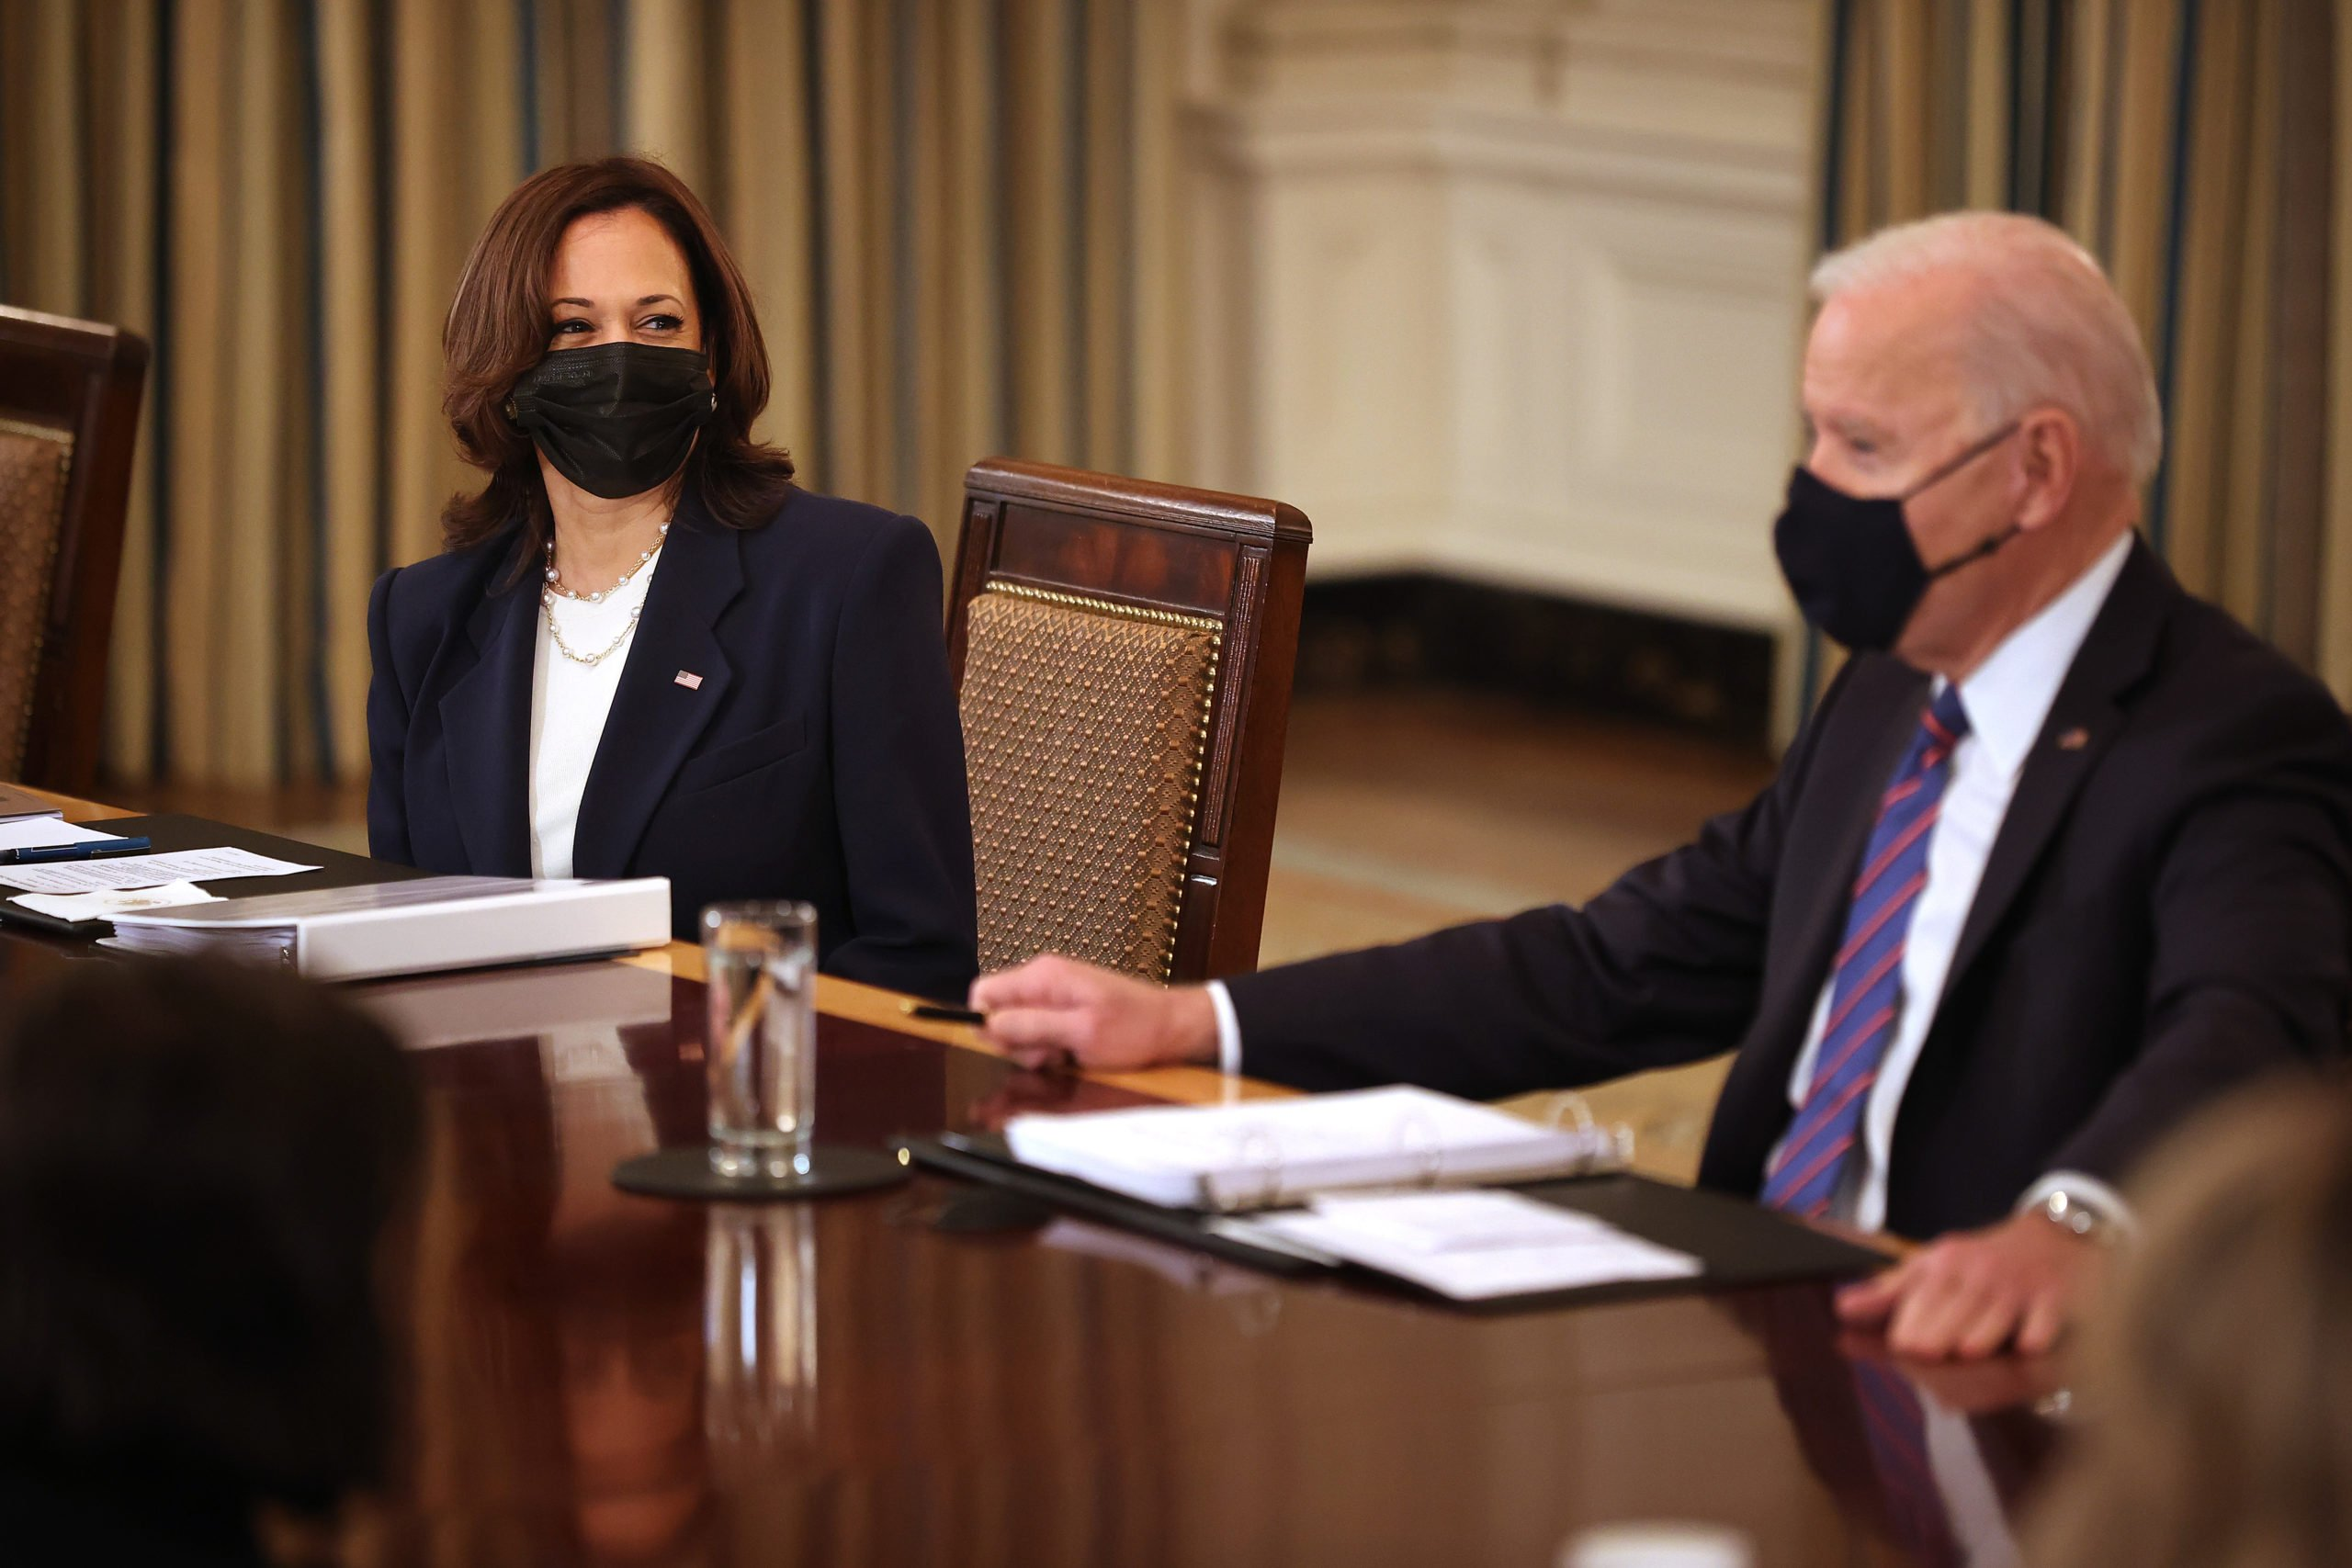 WASHINGTON, DC - MARCH 24: U.S. Vice President Kamala Harris (L) and President Joe Biden meet with cabinet memebrs and immigration advisors in the State Dining Room on March 24, 2021 in Washington, DC. With the number of migrants apprehended at the U.S.-Mexico border reaching a two-decade high, Biden announced that Harris will be leading the White House efforts to handle the crisis at the border. (Photo by Chip Somodevilla/Getty Images)